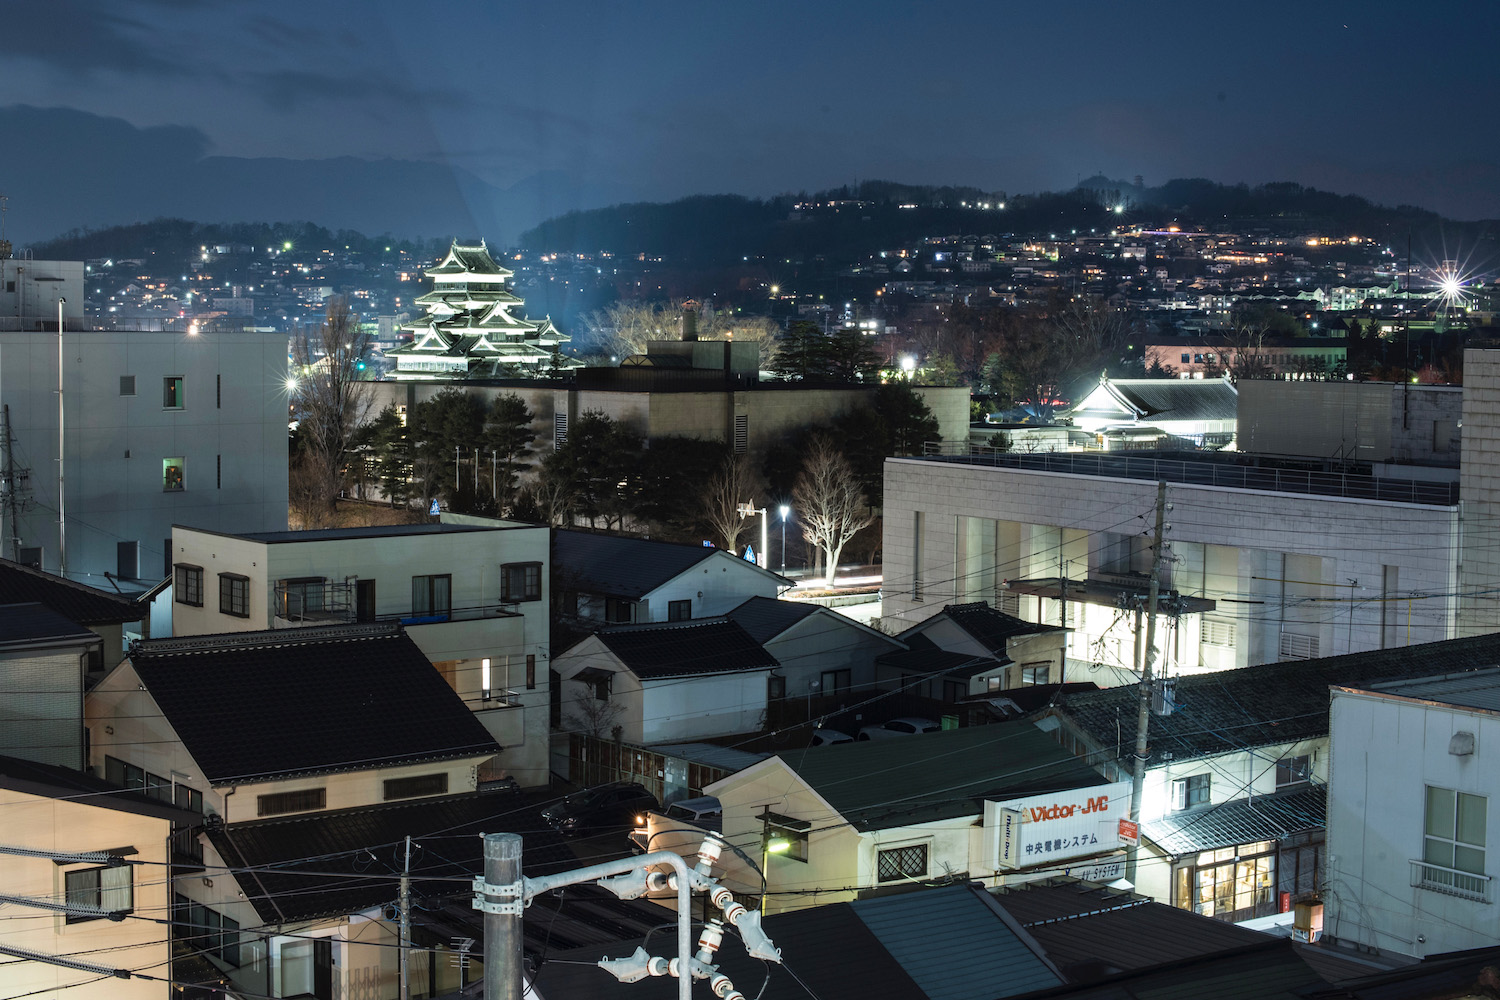 Matsumoto, Japan at Dusk